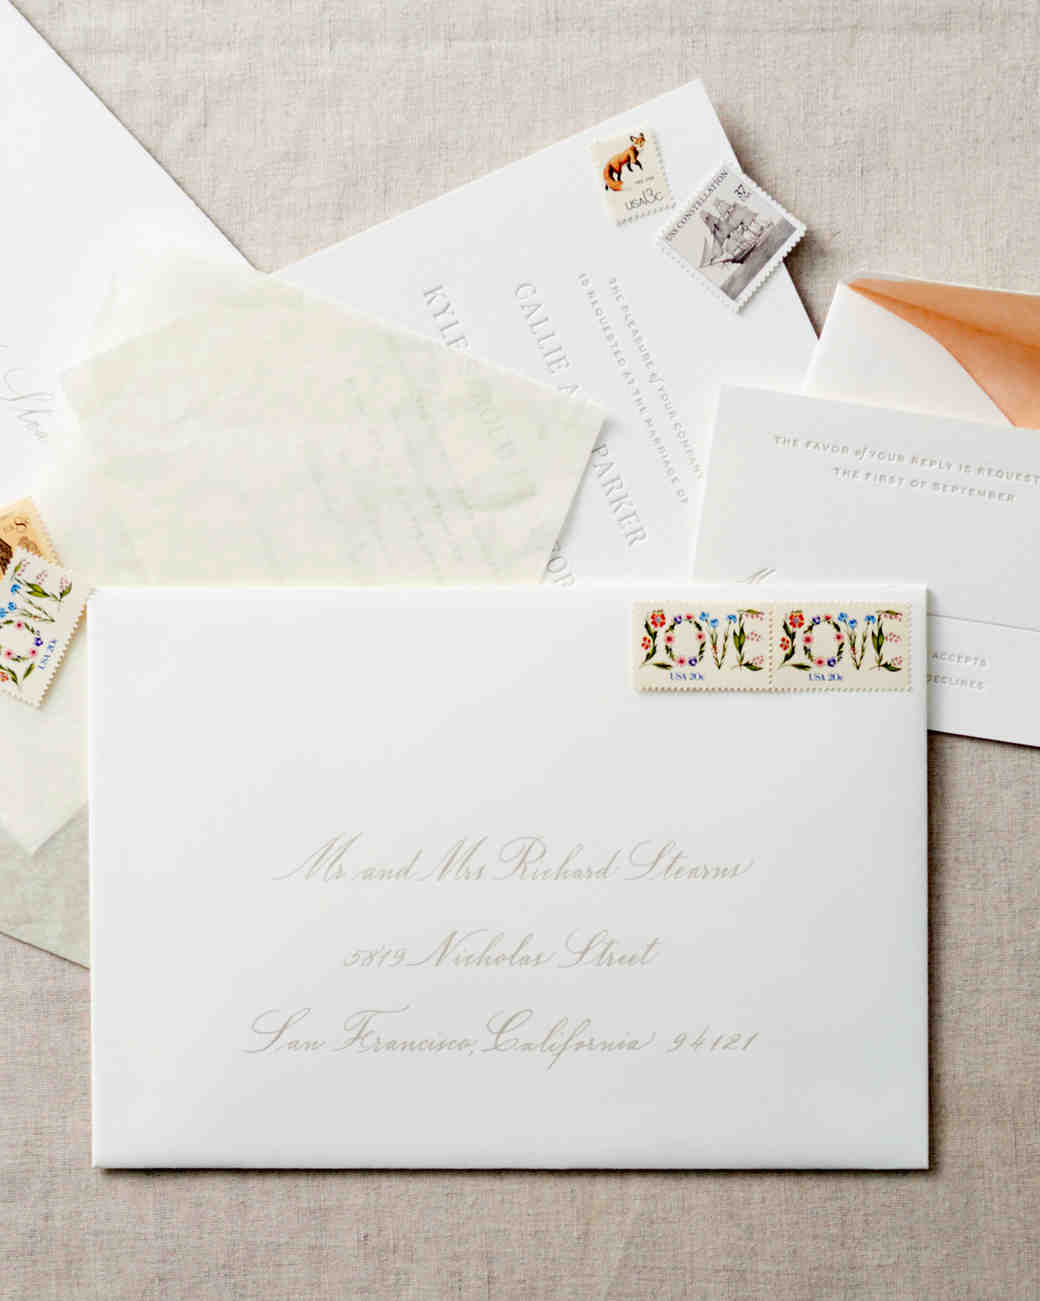 guests names though etiquette for addressing and assembling wedding invitations - Addressing Wedding Invitations Etiquette